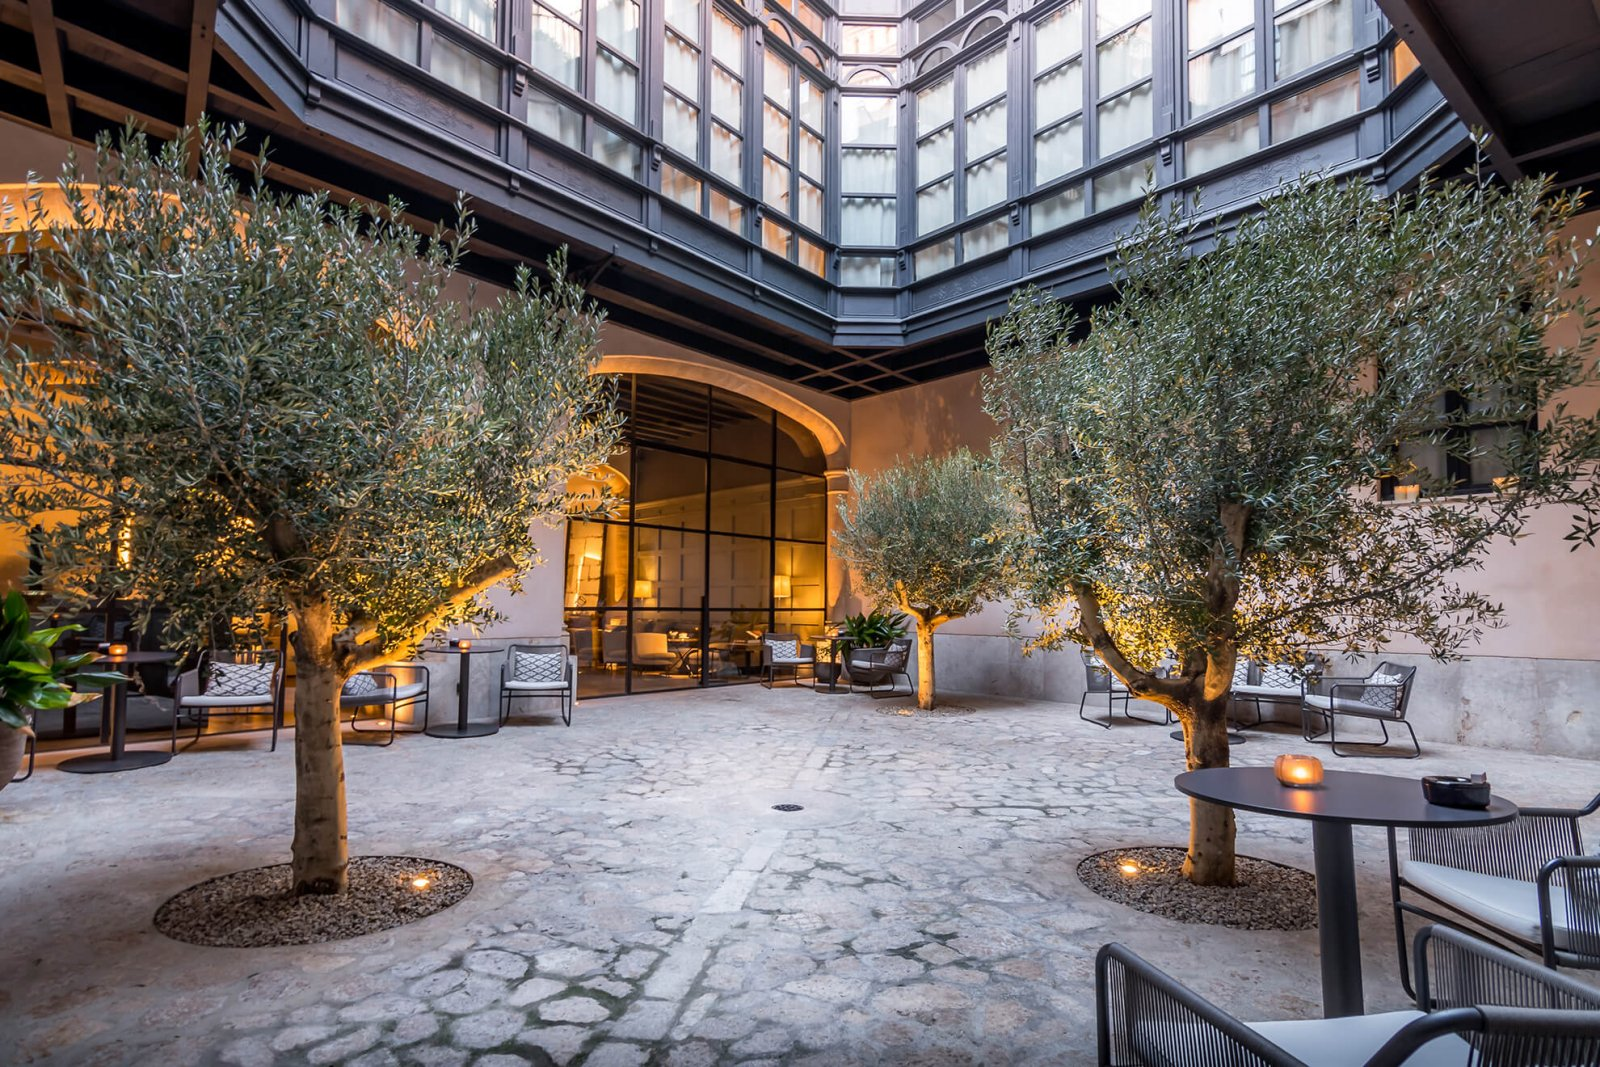 View of the interior patio with olive trees, stone floors and large windows with dark details